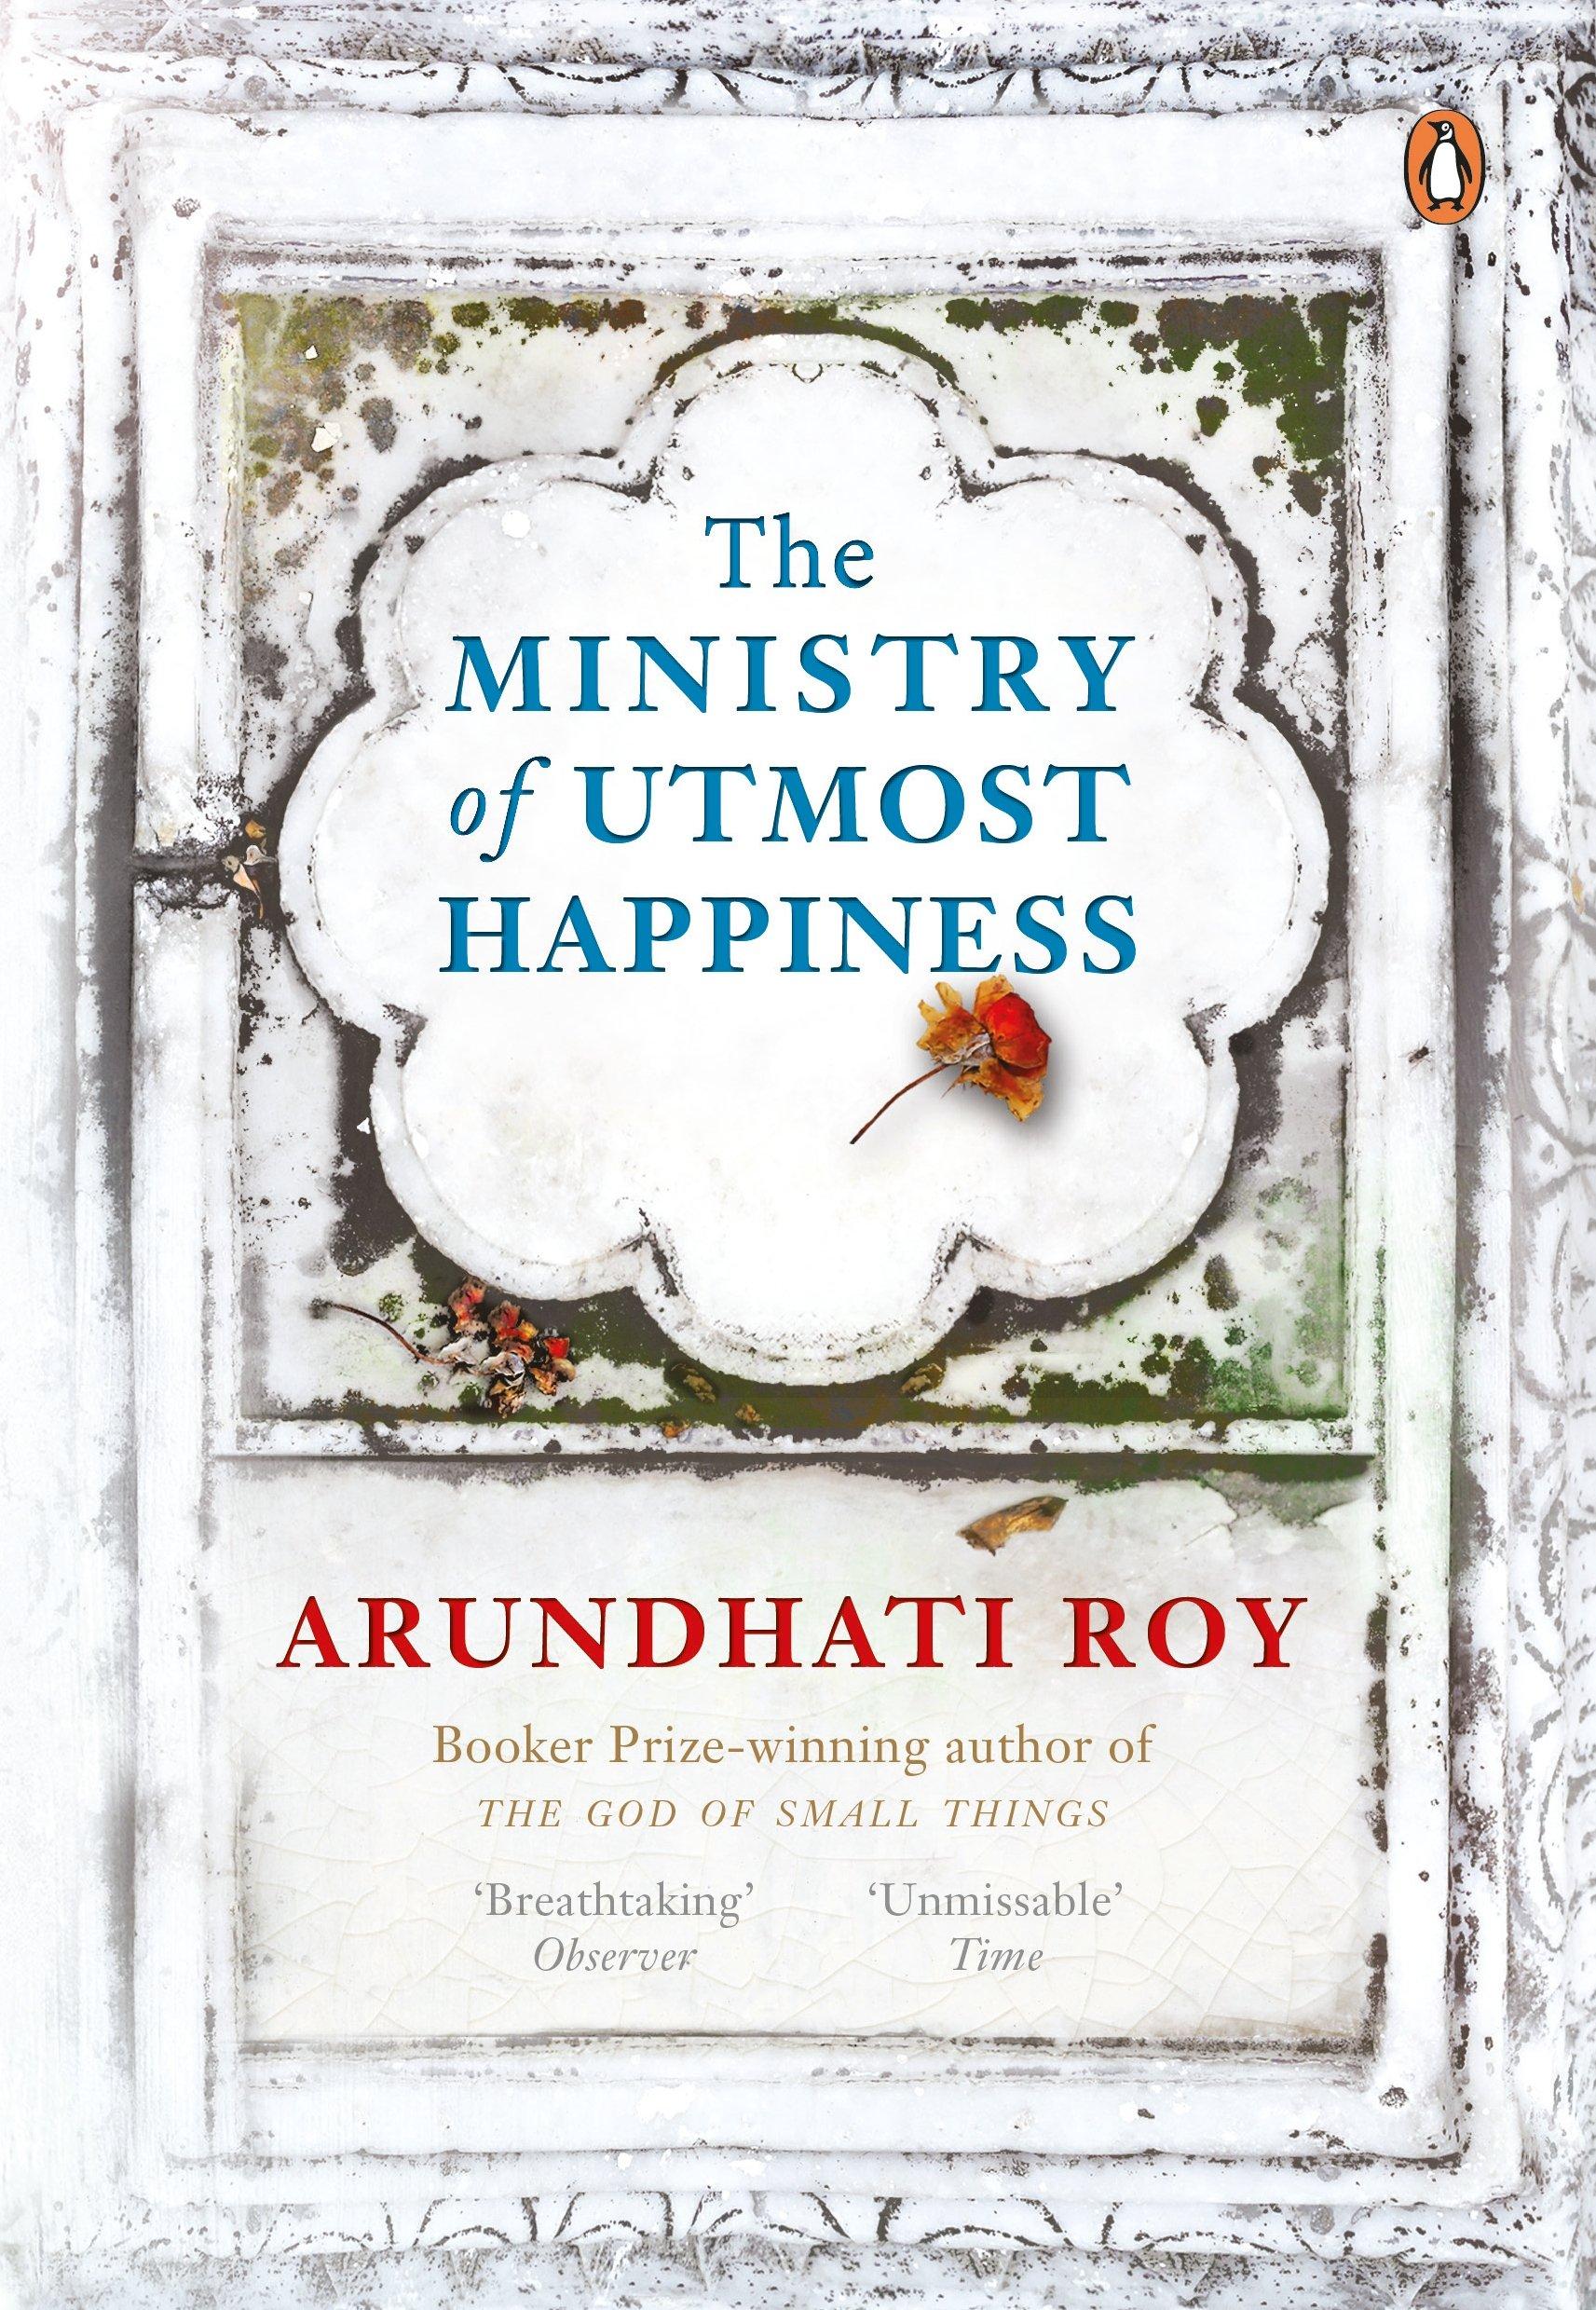 MINISTRY OF UTMOST HAPPINESS - 9780143442769